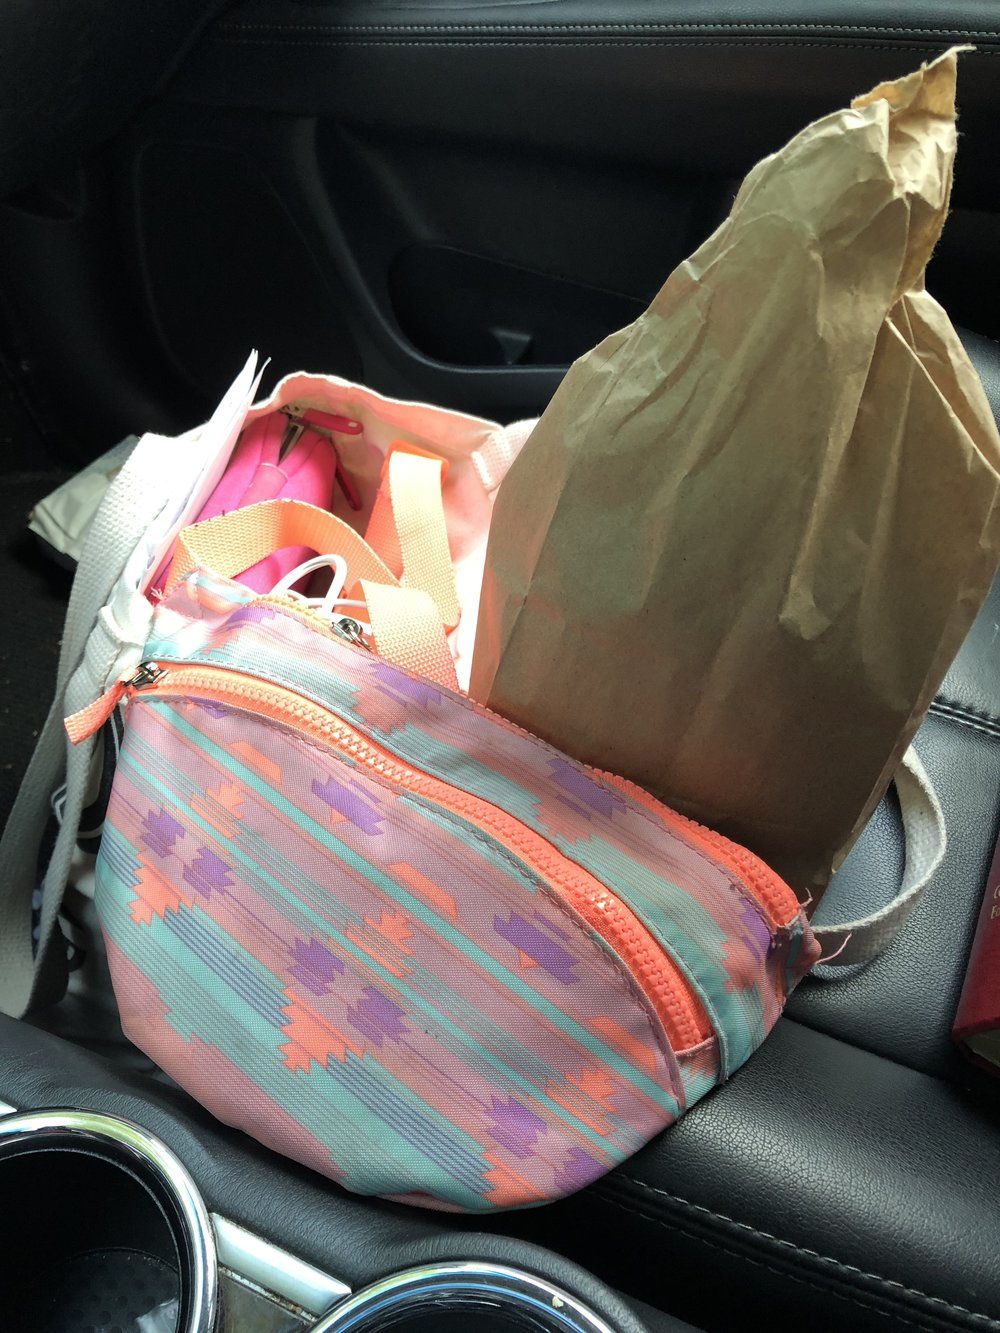 Day One: I packed lunch of a turkey sandwich and frit and my fanny pack so I can sneak in a walk before picking big girl up from school.